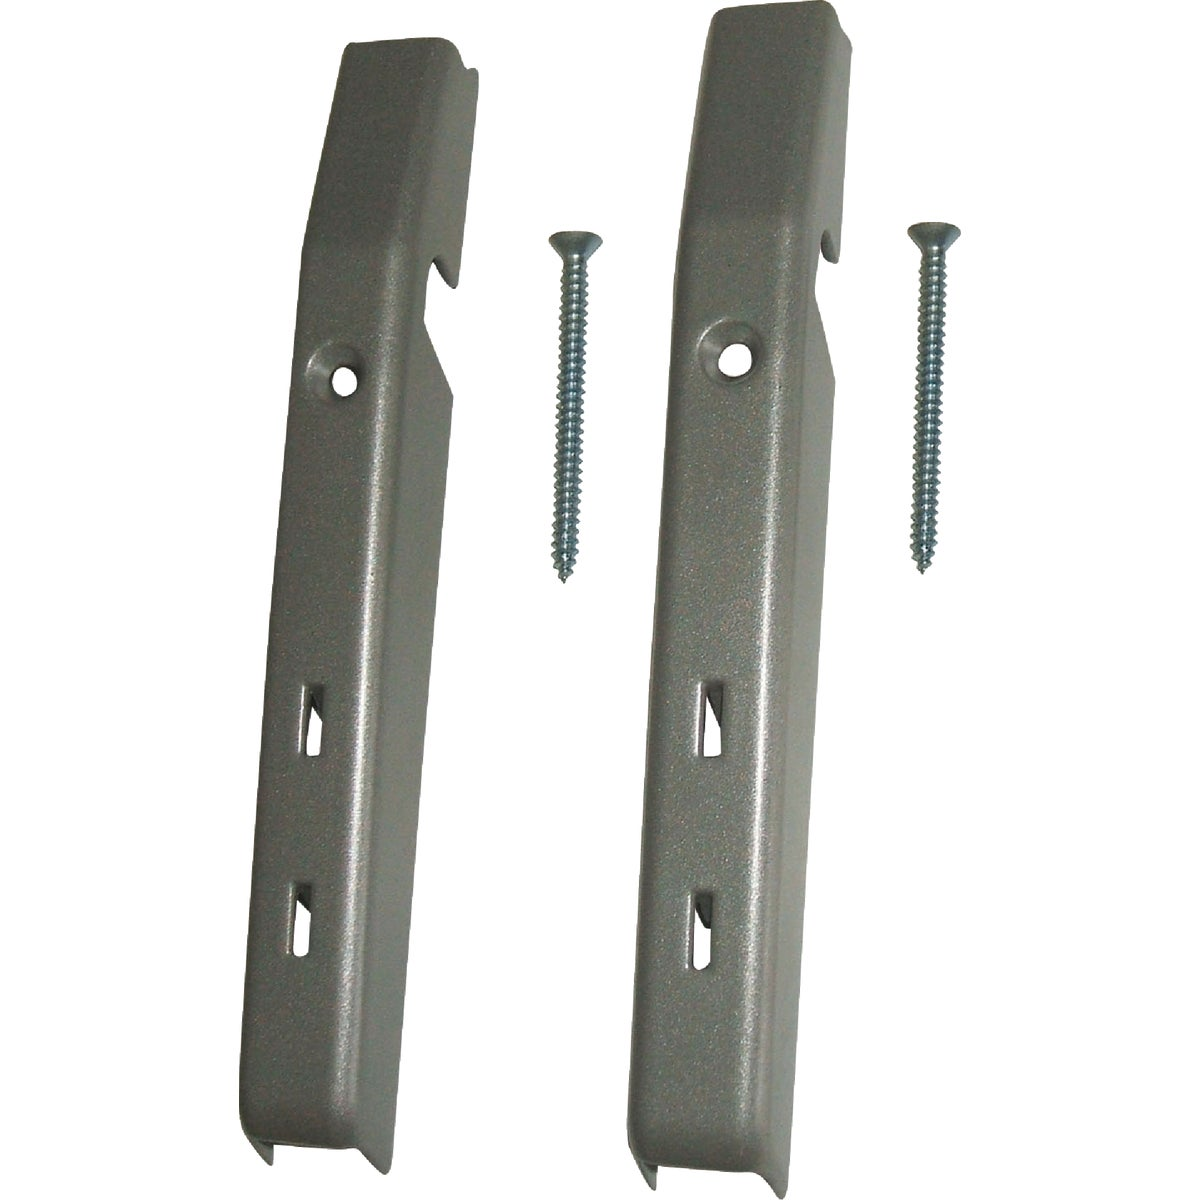 TI STD HANG RAIL LINK